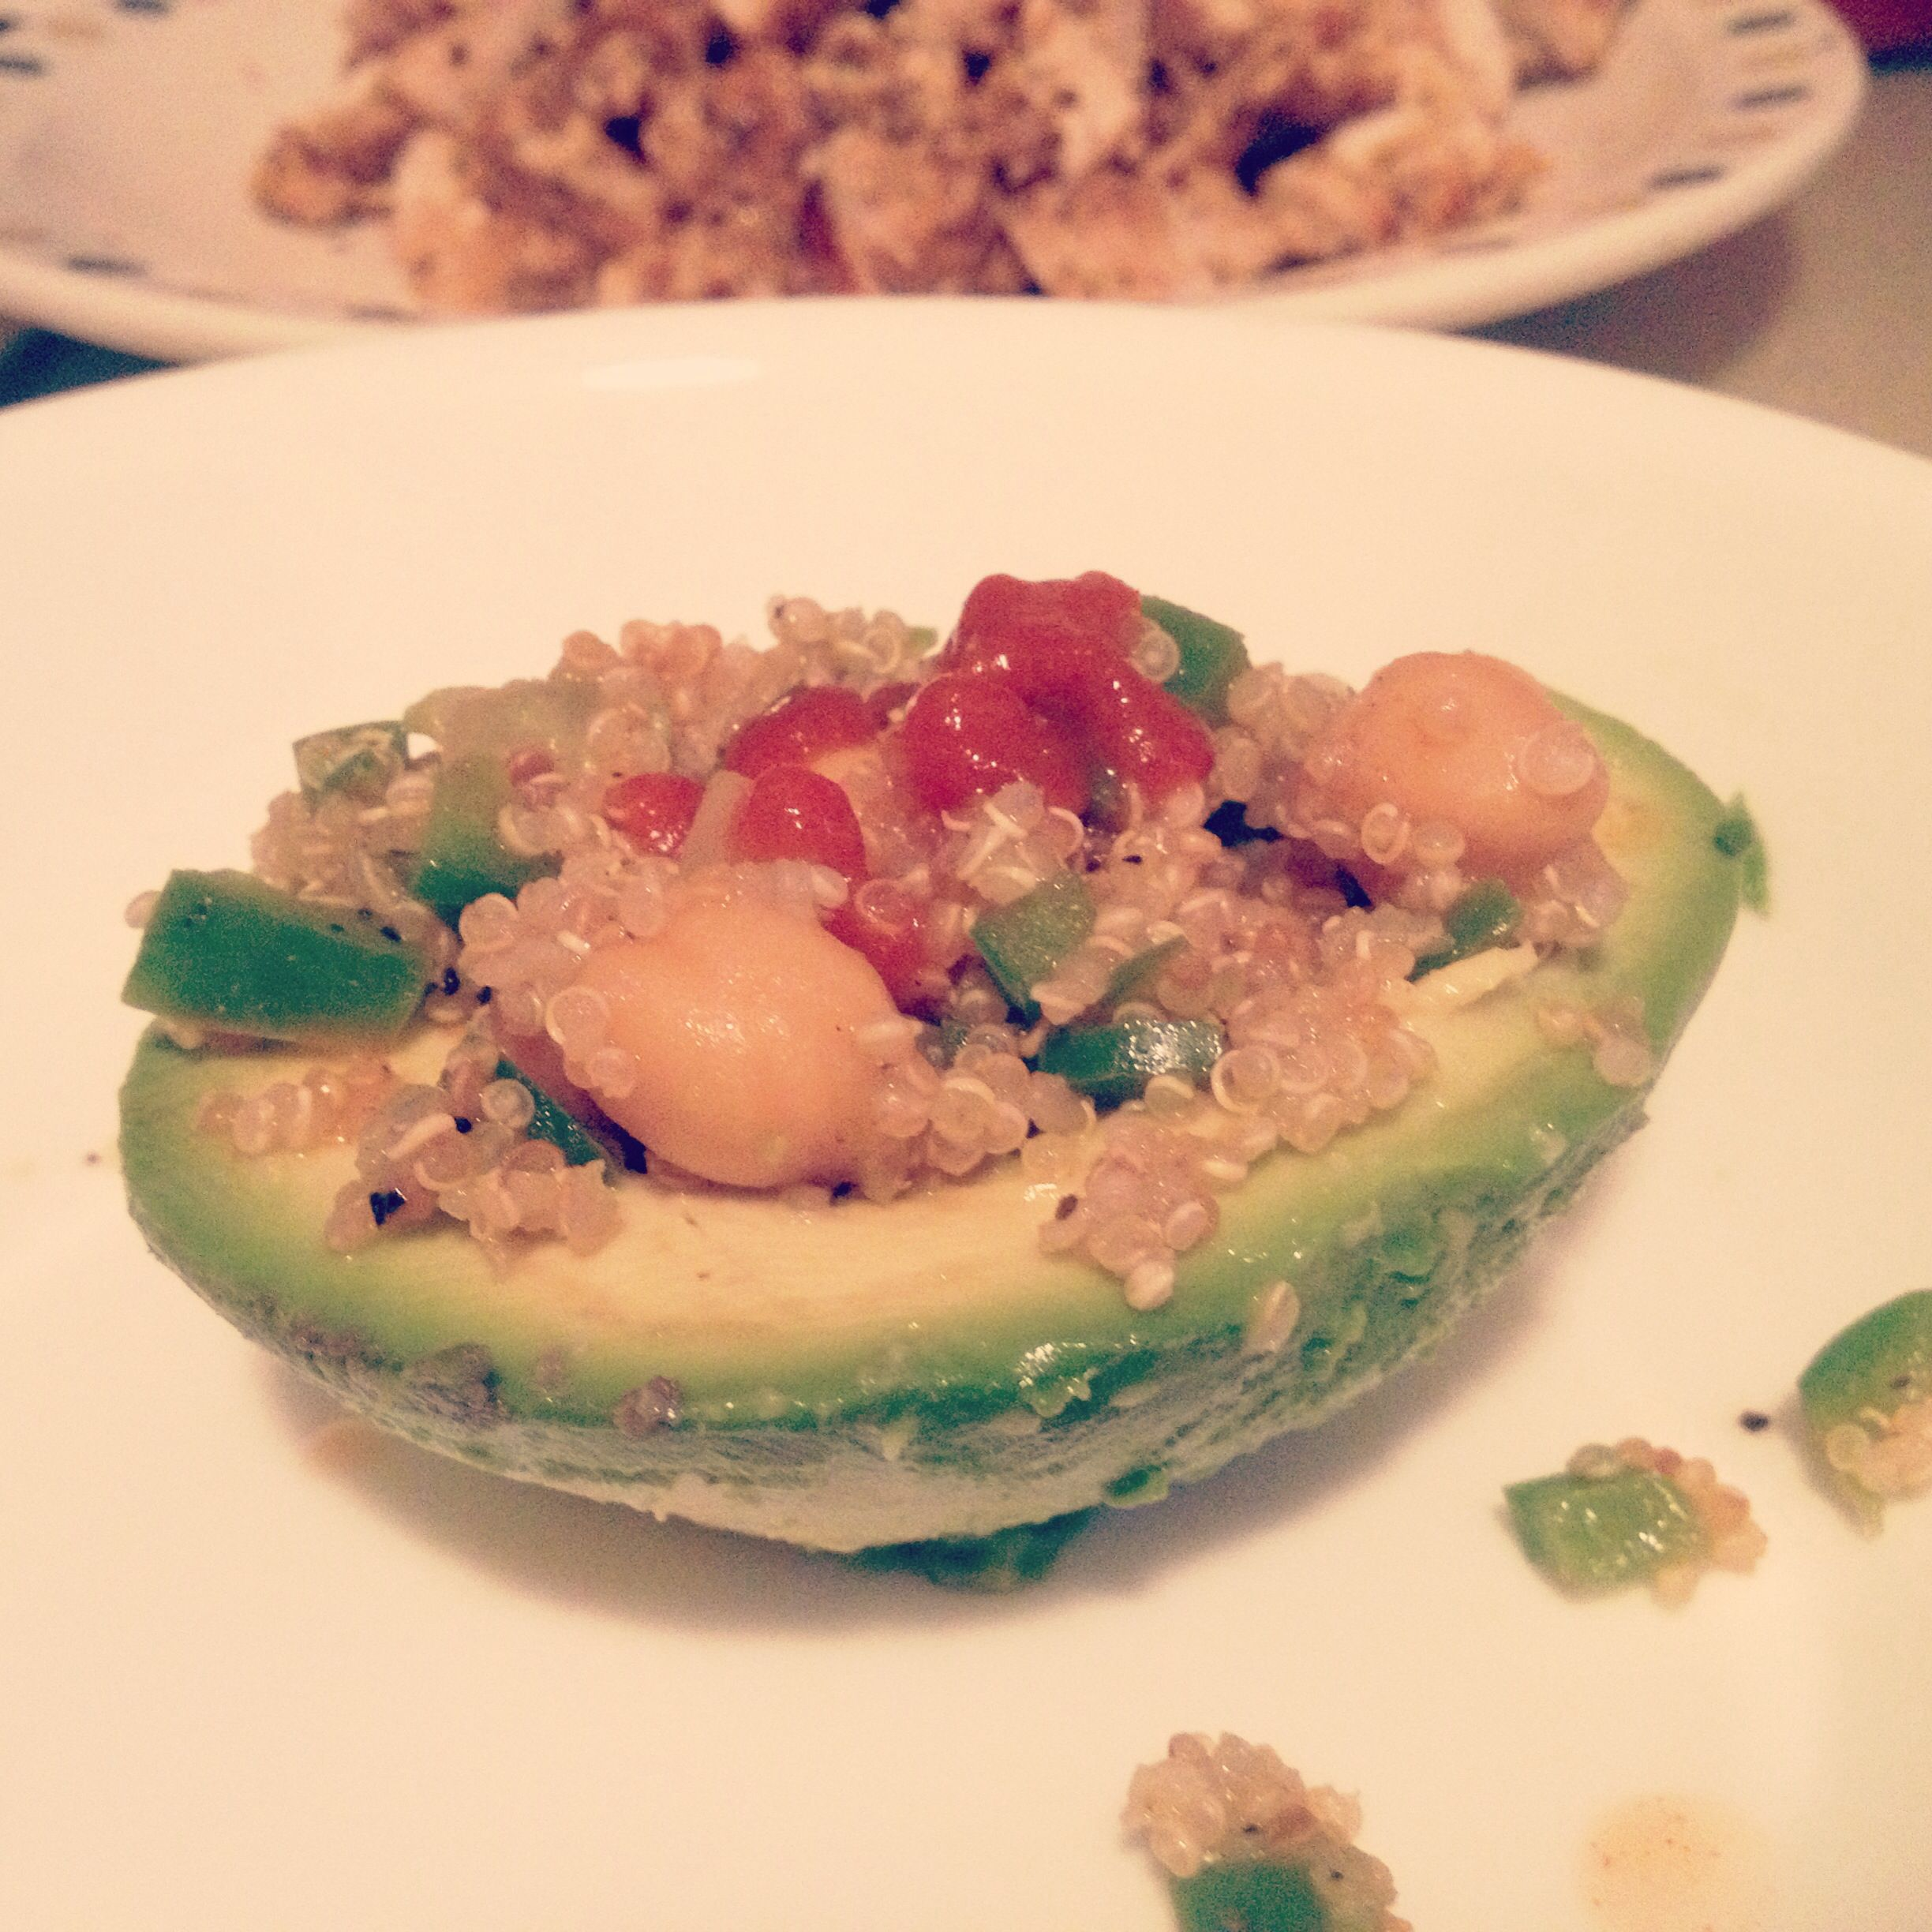 Stuffed avocado with quinoa,chick peas, and green peppers, topped with few drops of hot sauce (of course ;) )